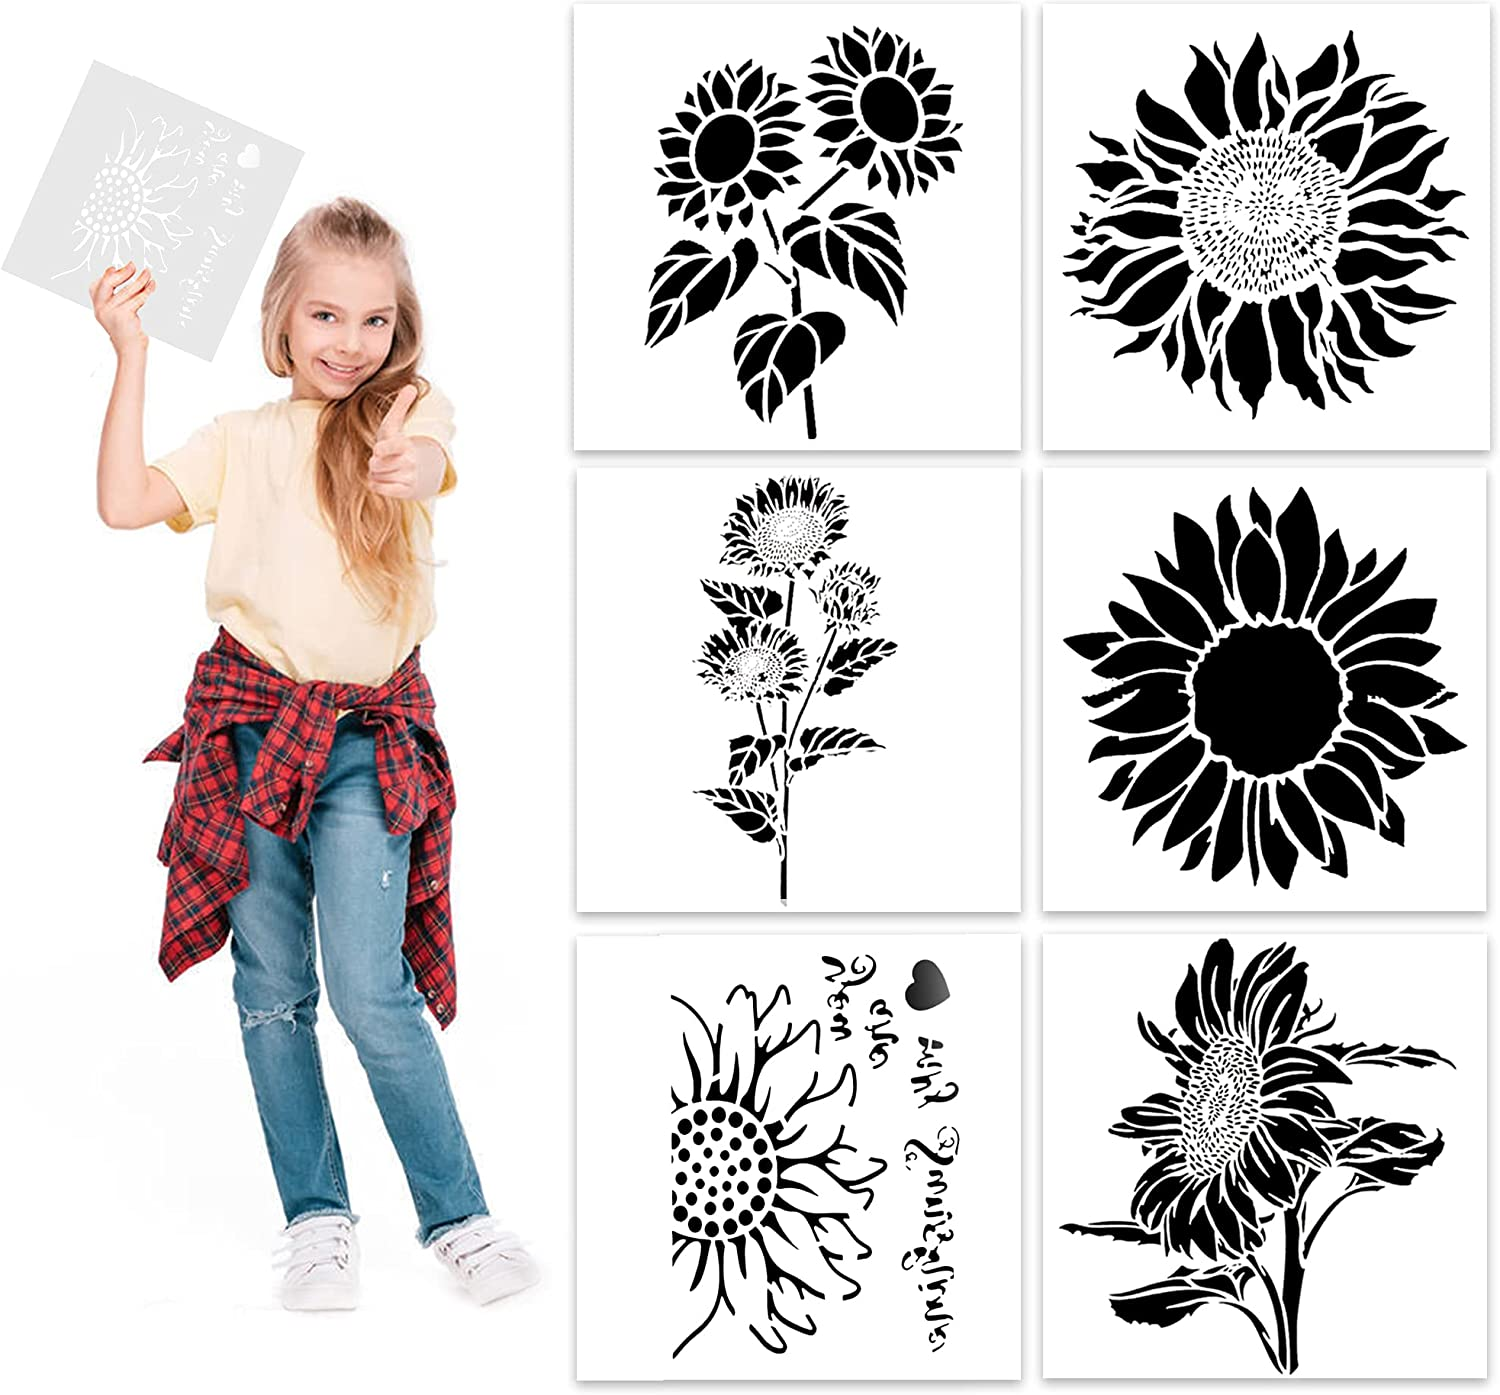 6 Pieces Sunflower Stencil Kit, DIY Decorative Sunflower Stencil Template for Painting on Walls Furniture Crafts Home Decor